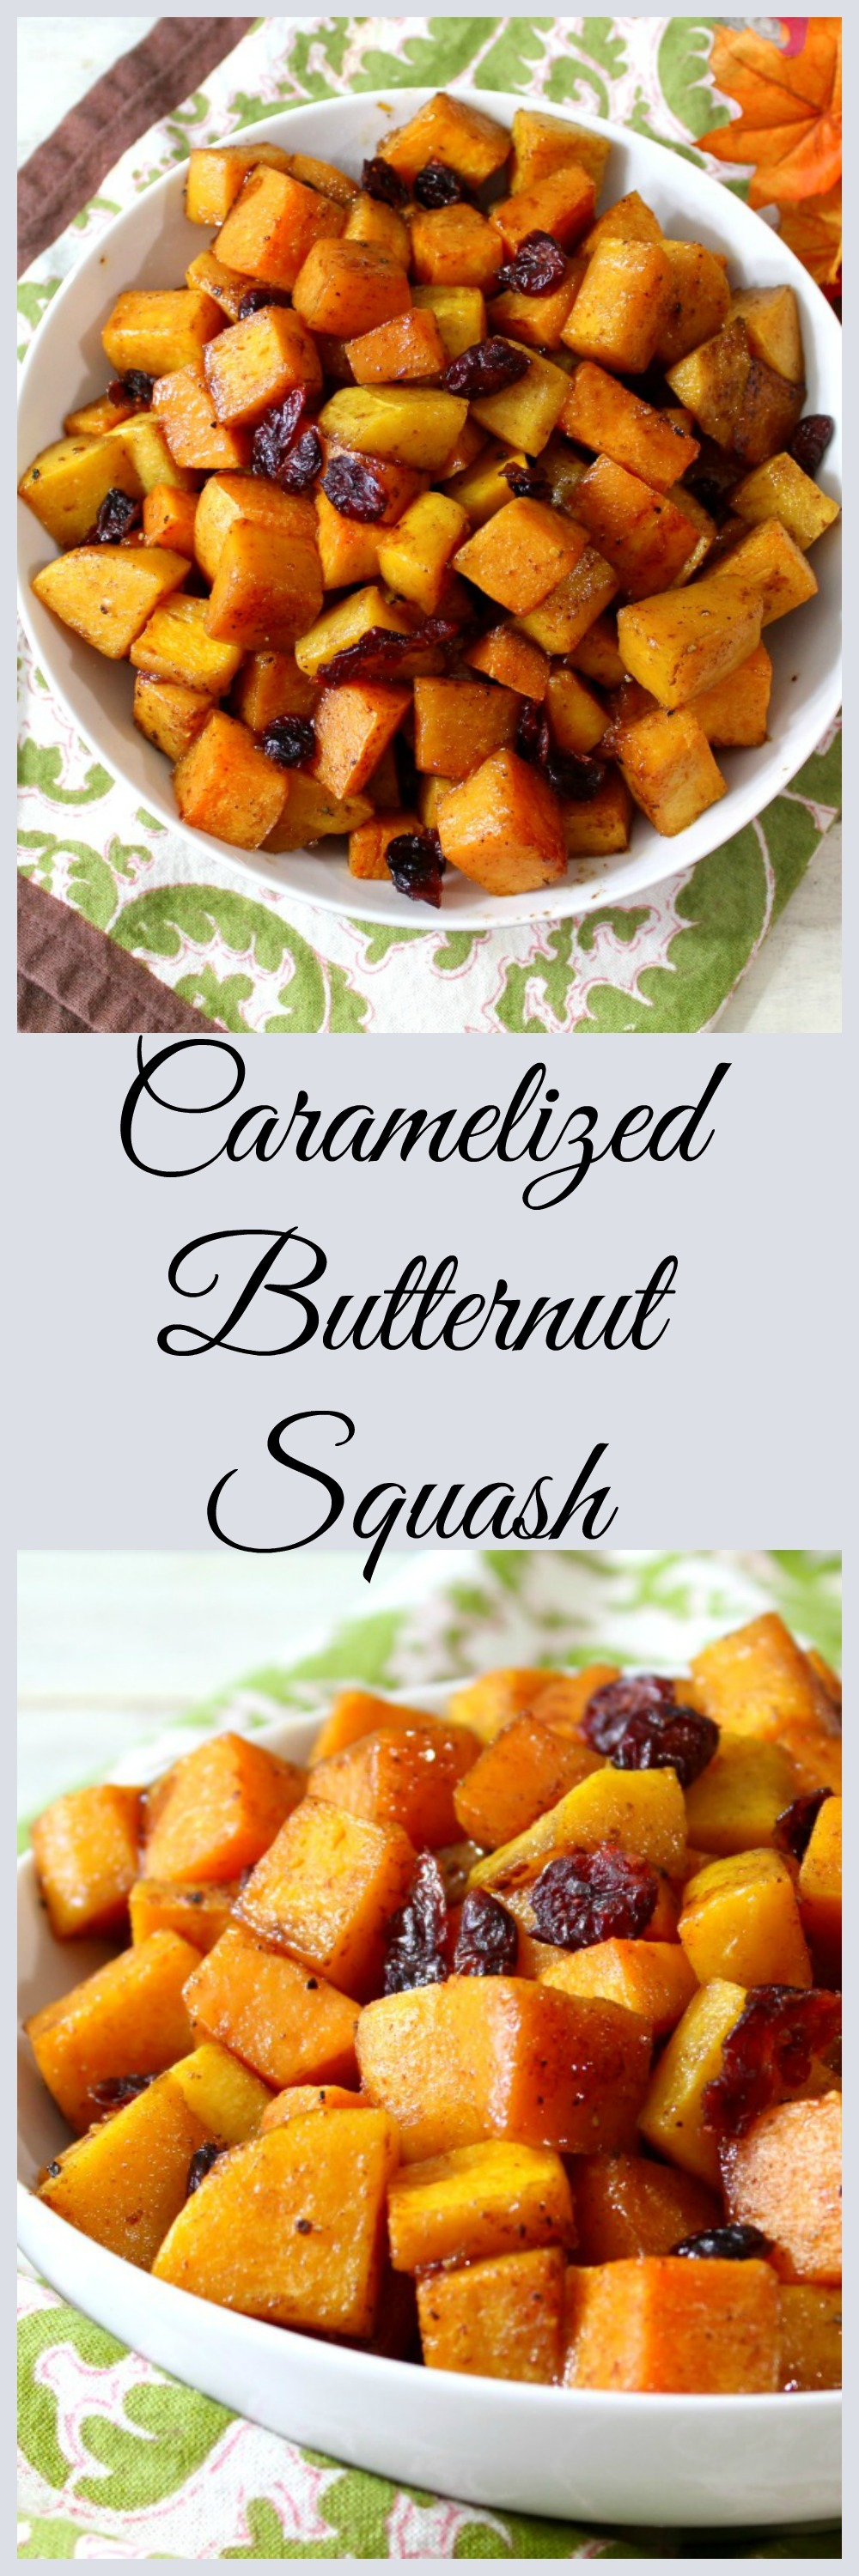 cCaramelized Butternut Squash